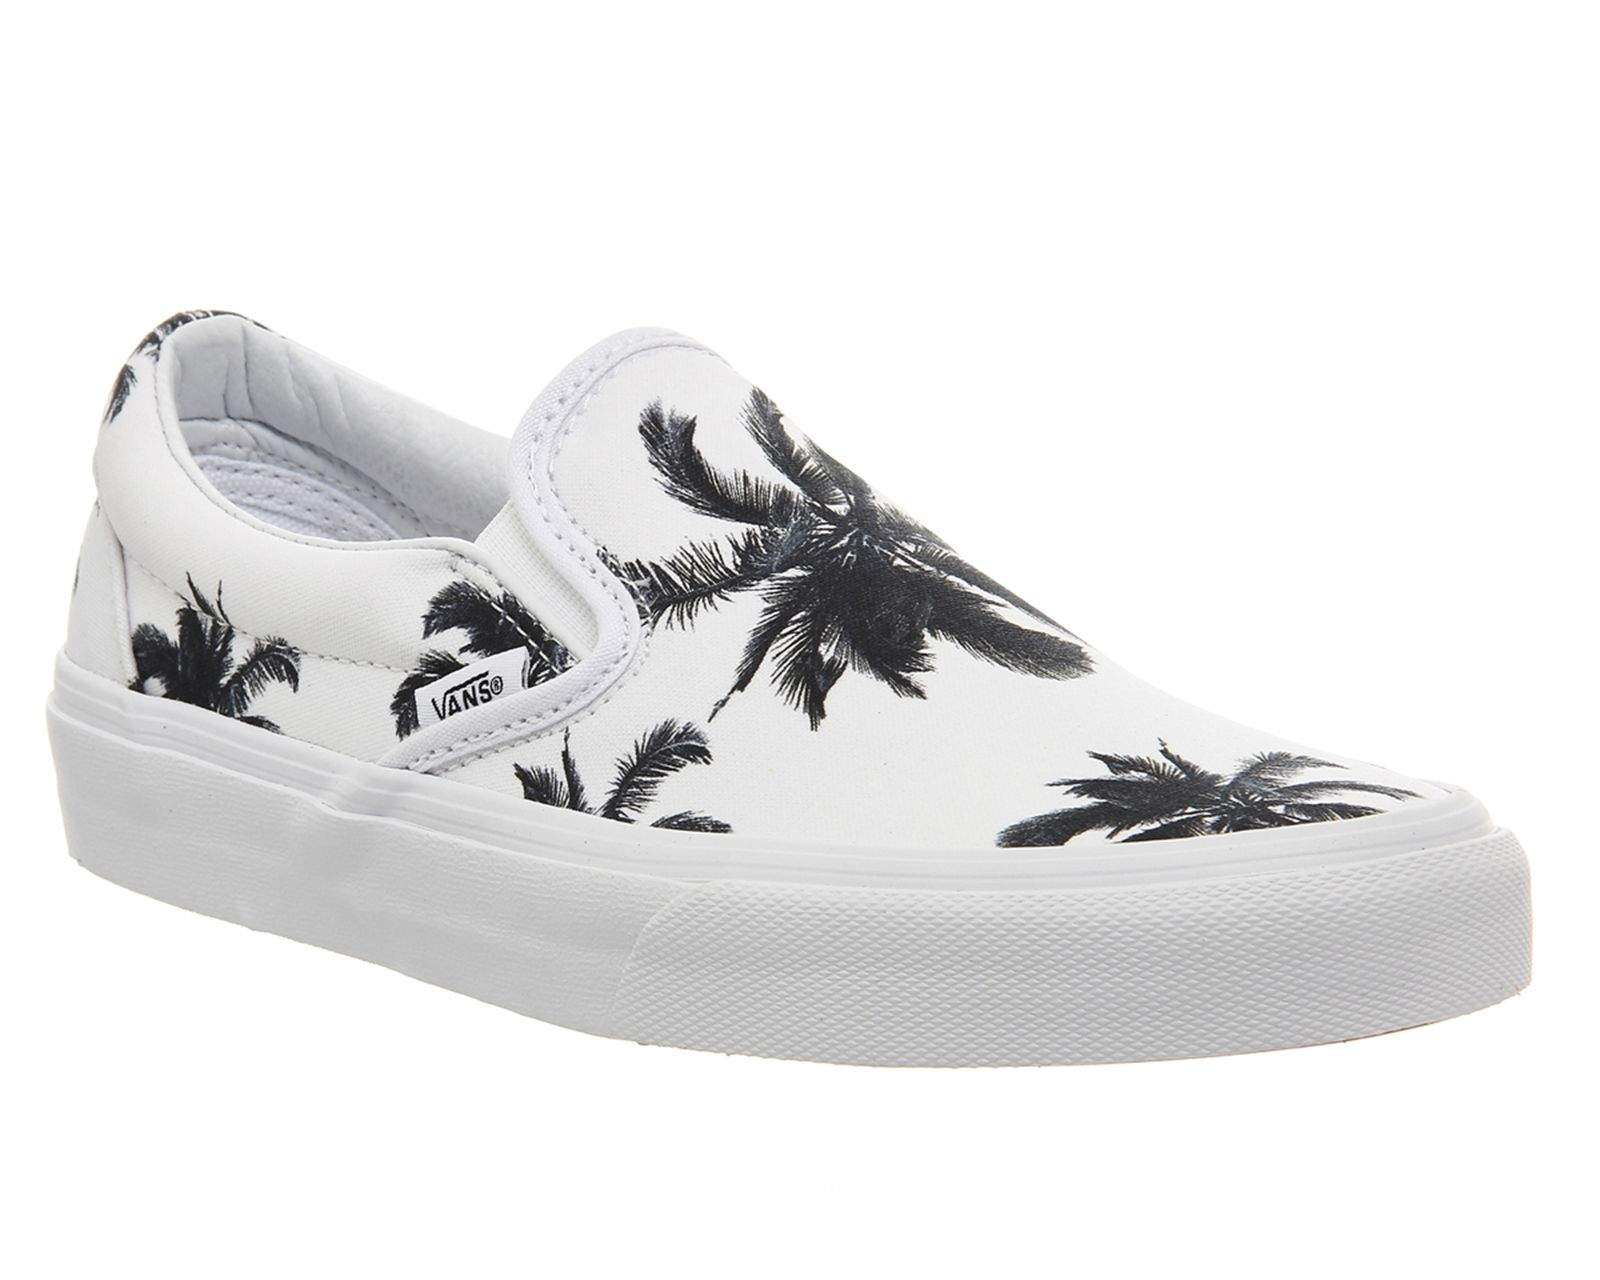 d0c1f3df925 Buy Palm Print White Vans Classic Slip On Shoes from OFFICE.co.uk ...